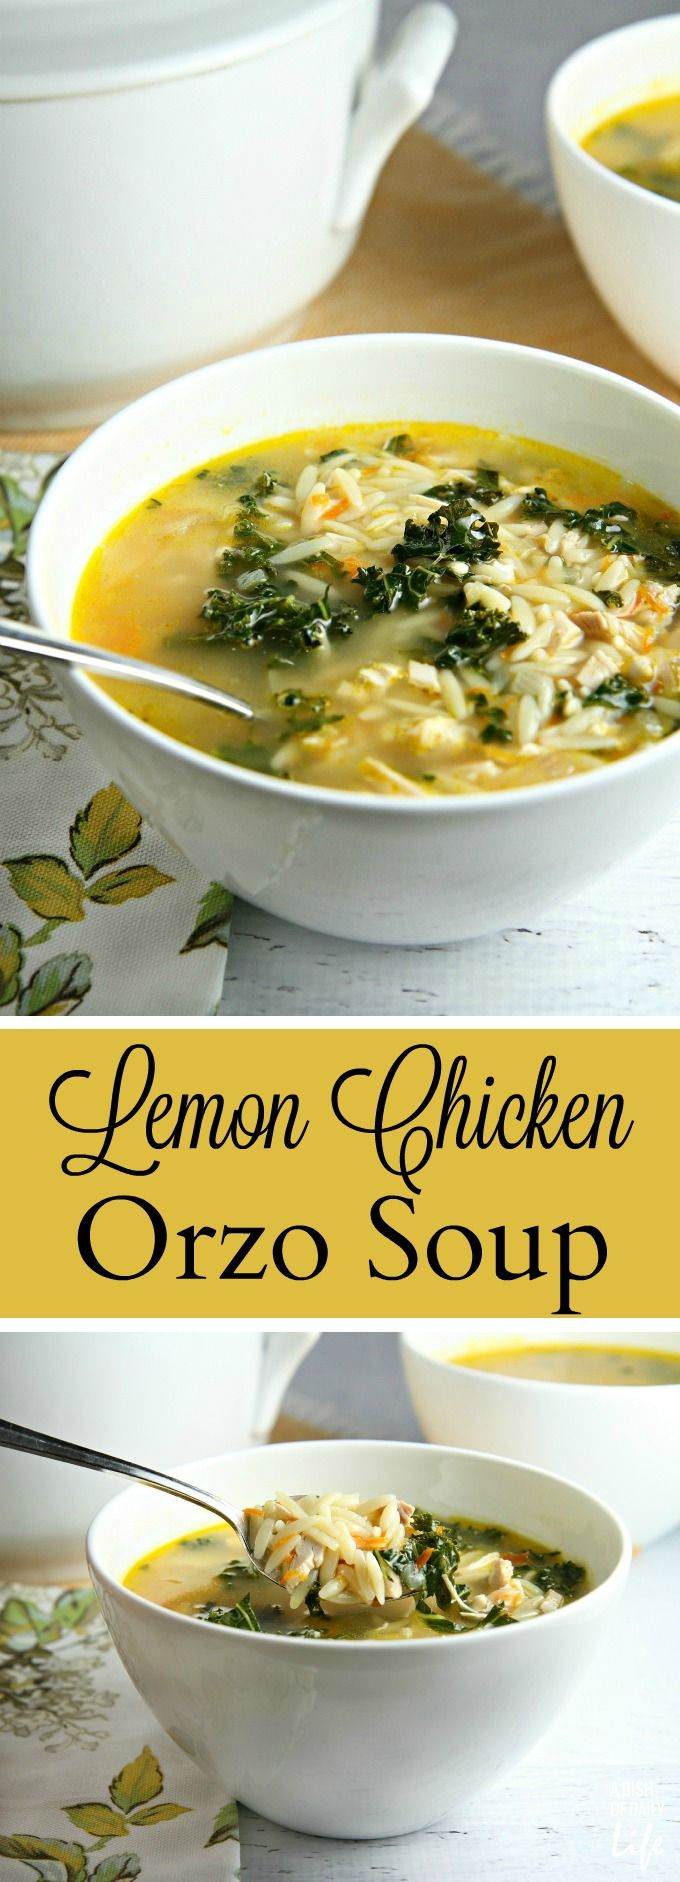 This delicious Lemon Chicken Orzo Soup recipe is the perfect alternative to the traditional chicken soup. Packed with chicken, orzo, and kale, and a twist of lemon, this fast and easy soup (30 min) will warm your soul on a chilly day! You can also use your leftover Thanksgiving or Christmas turkey in place of the chicken.